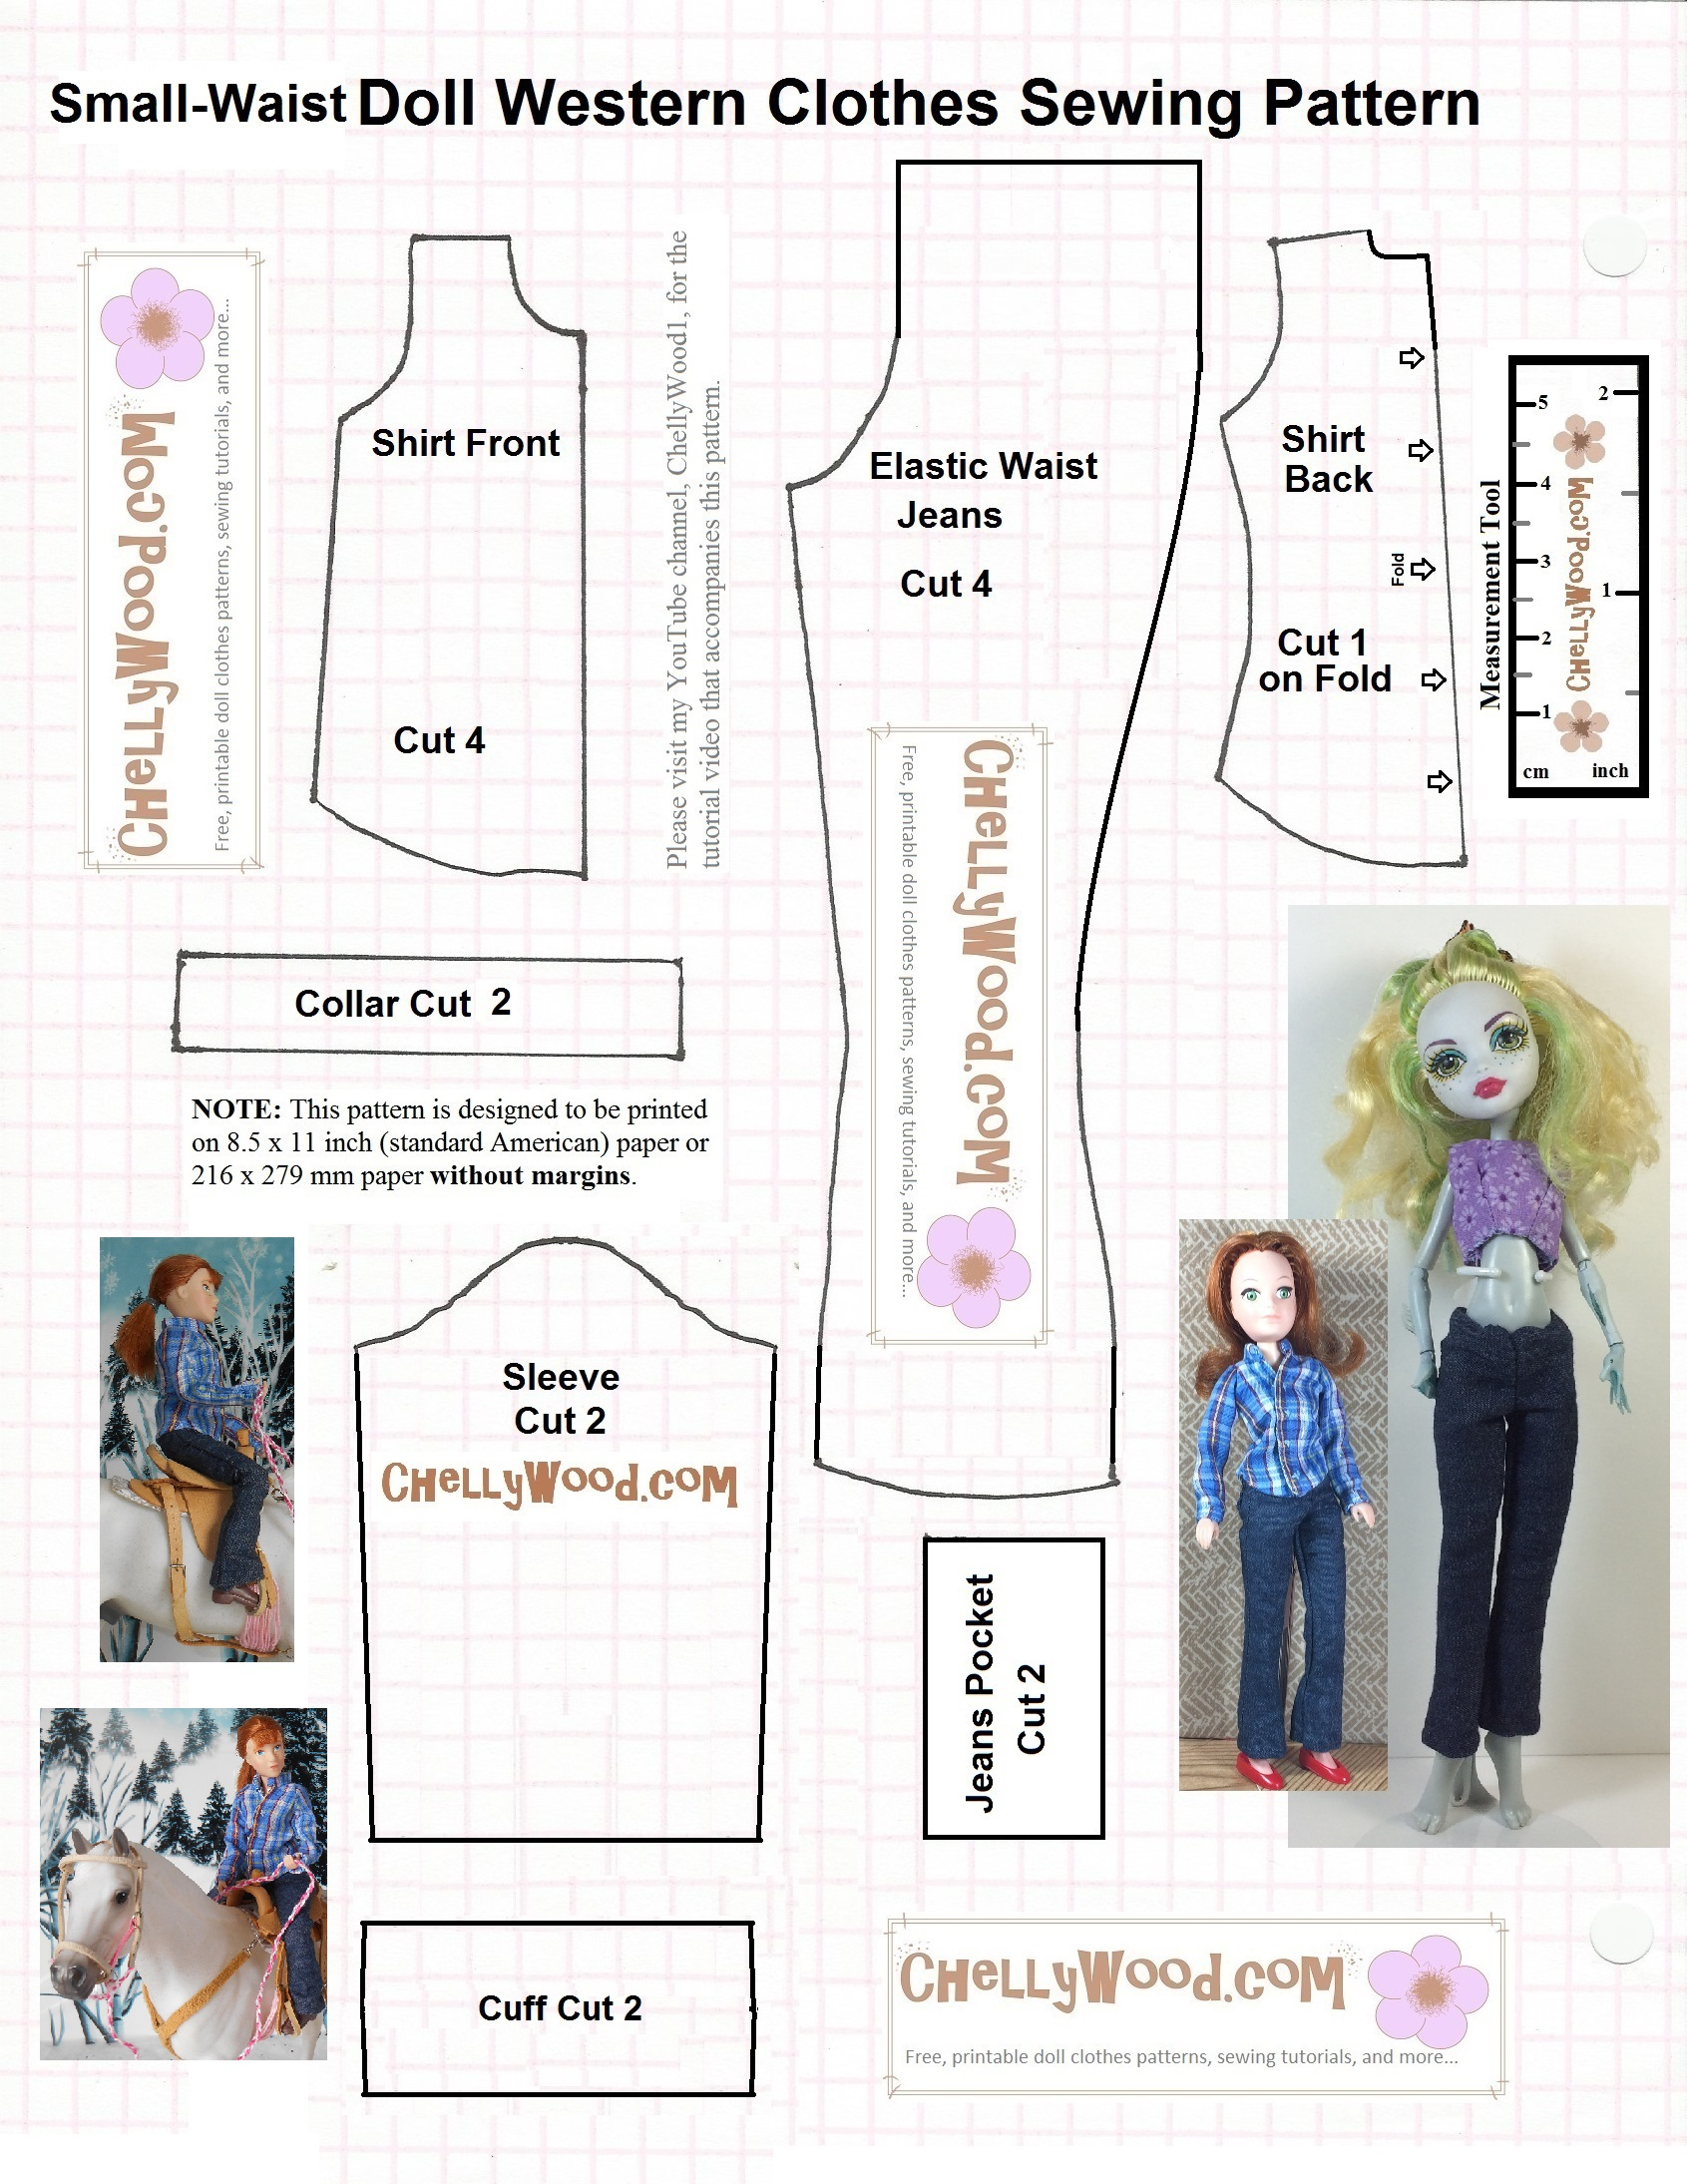 Daily Patterns – Free, printable doll clothes sewing patterns for